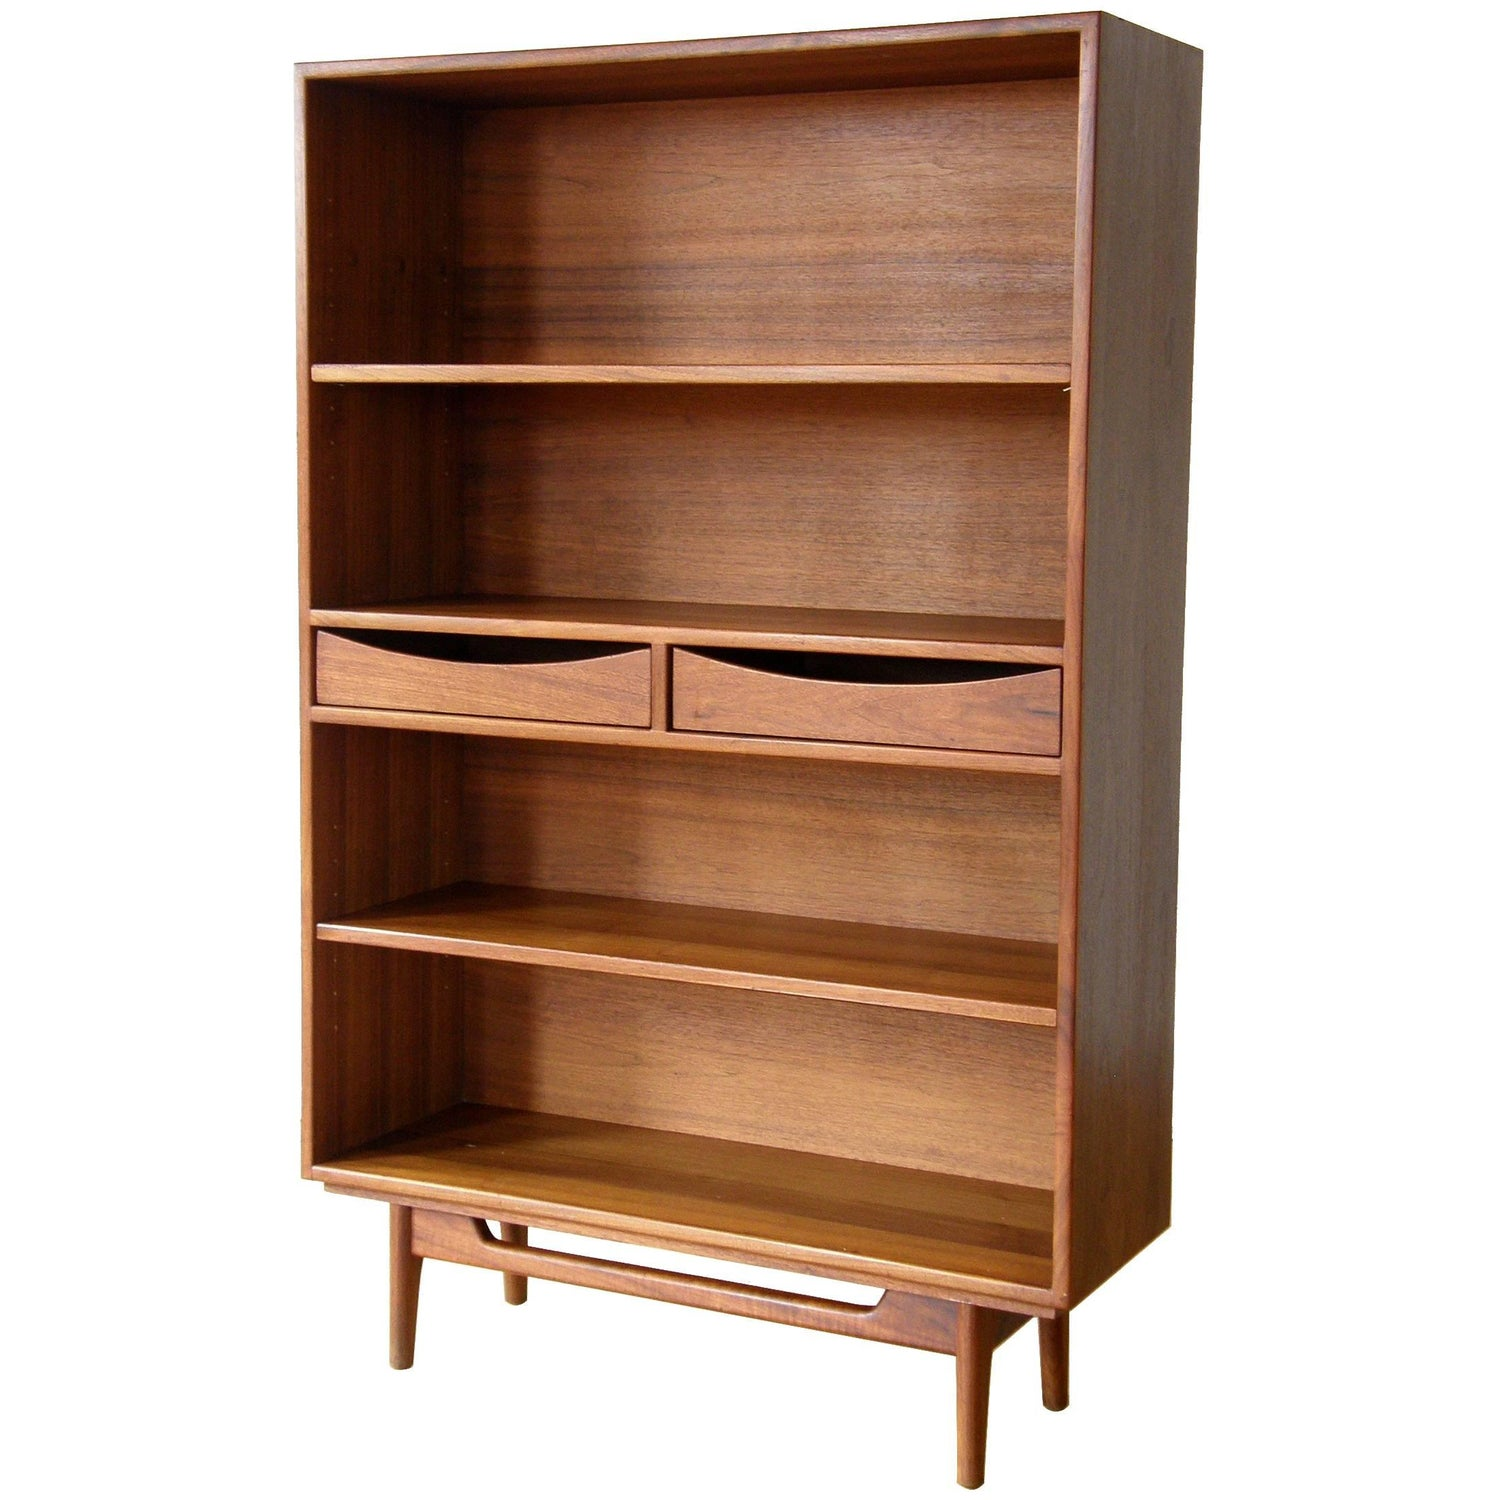 Jens Risom Bookcase with Drawers For Sale at 1stdibs